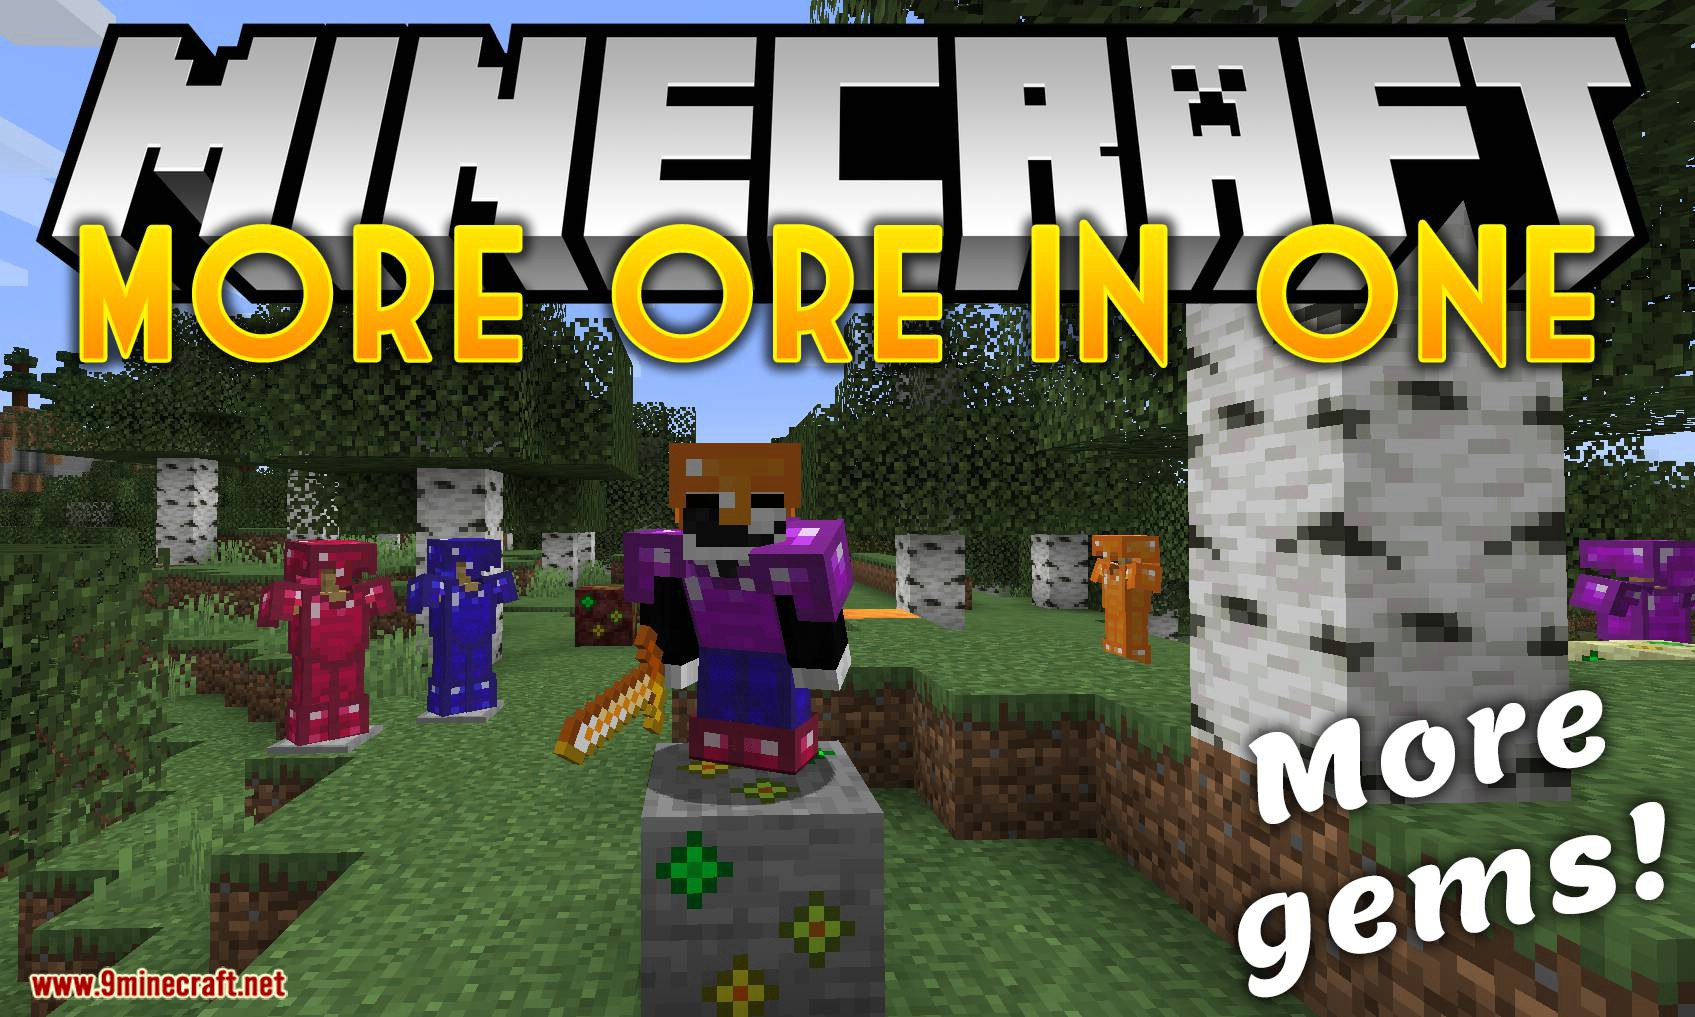 More Ores In ONE Mod 100.1006.100/100.1005.10 (Ores in the Overworld, Nether